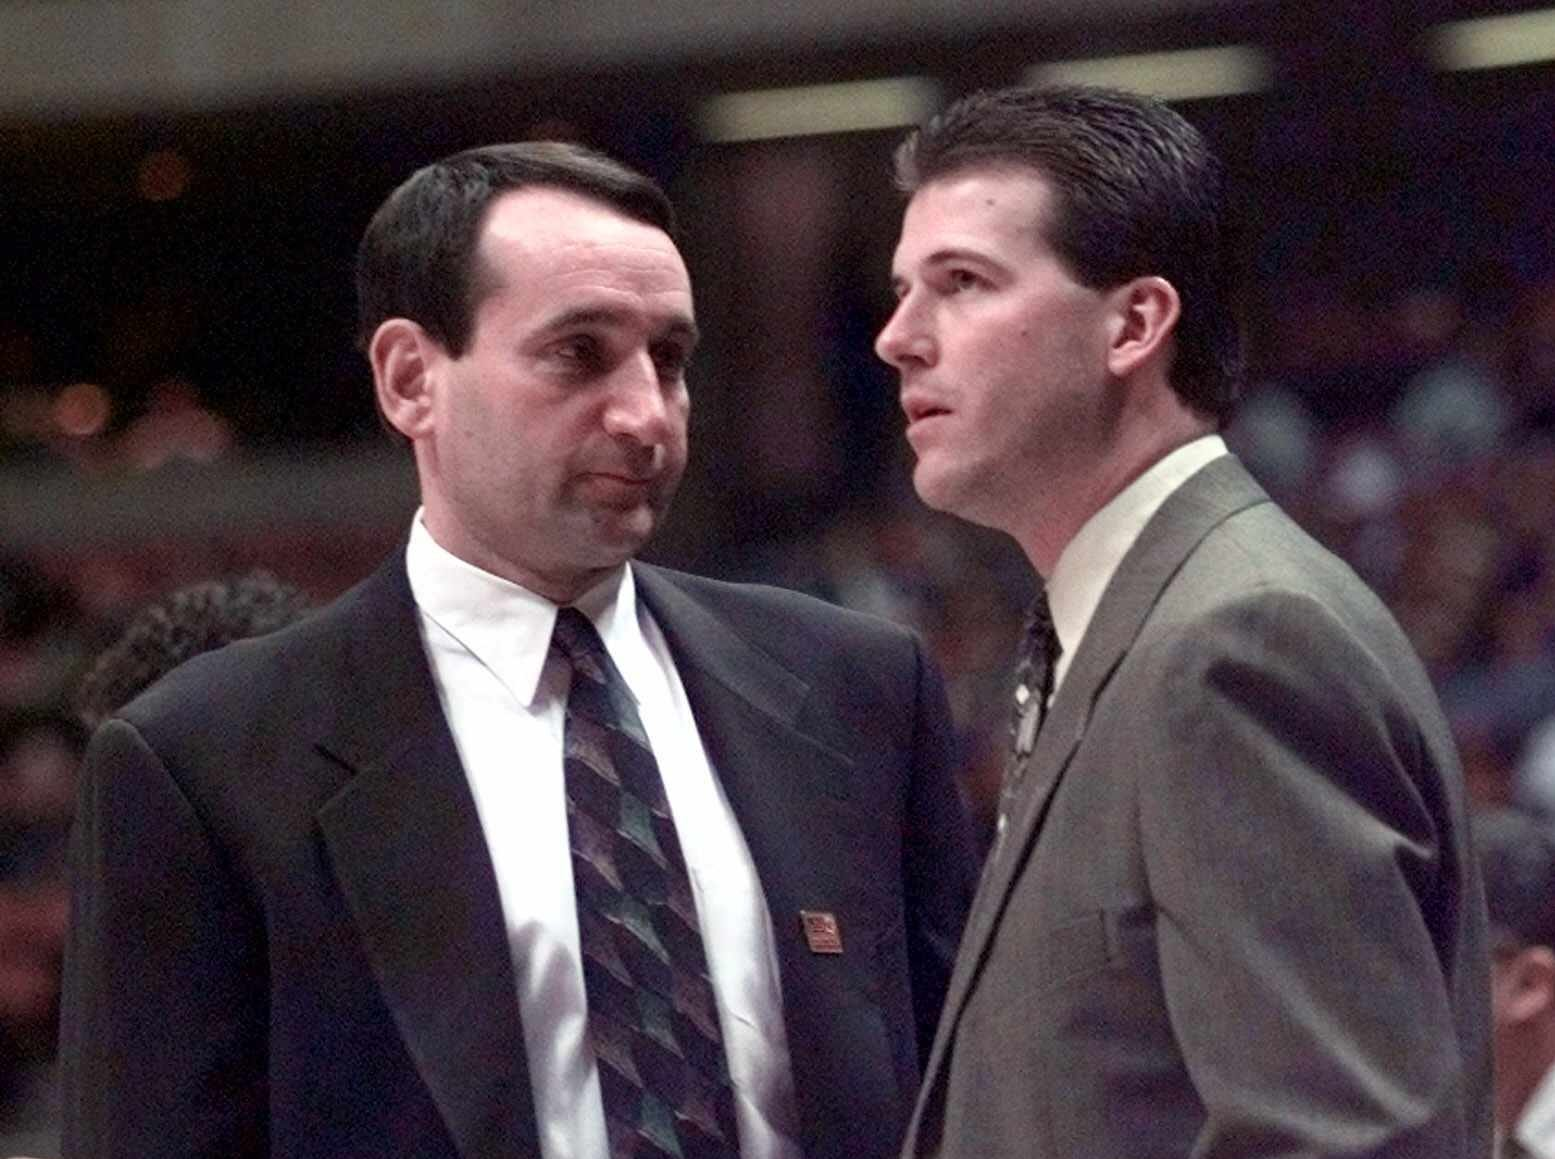 -  -Duke coach Mike Krzyzewski, left, and Southwest Missouri State coach Steve Alford talk before their East Regional Semifinal game in East Rutherford, N.J. Friday, March19, 1999. (AP Photo/Kathy Willens)